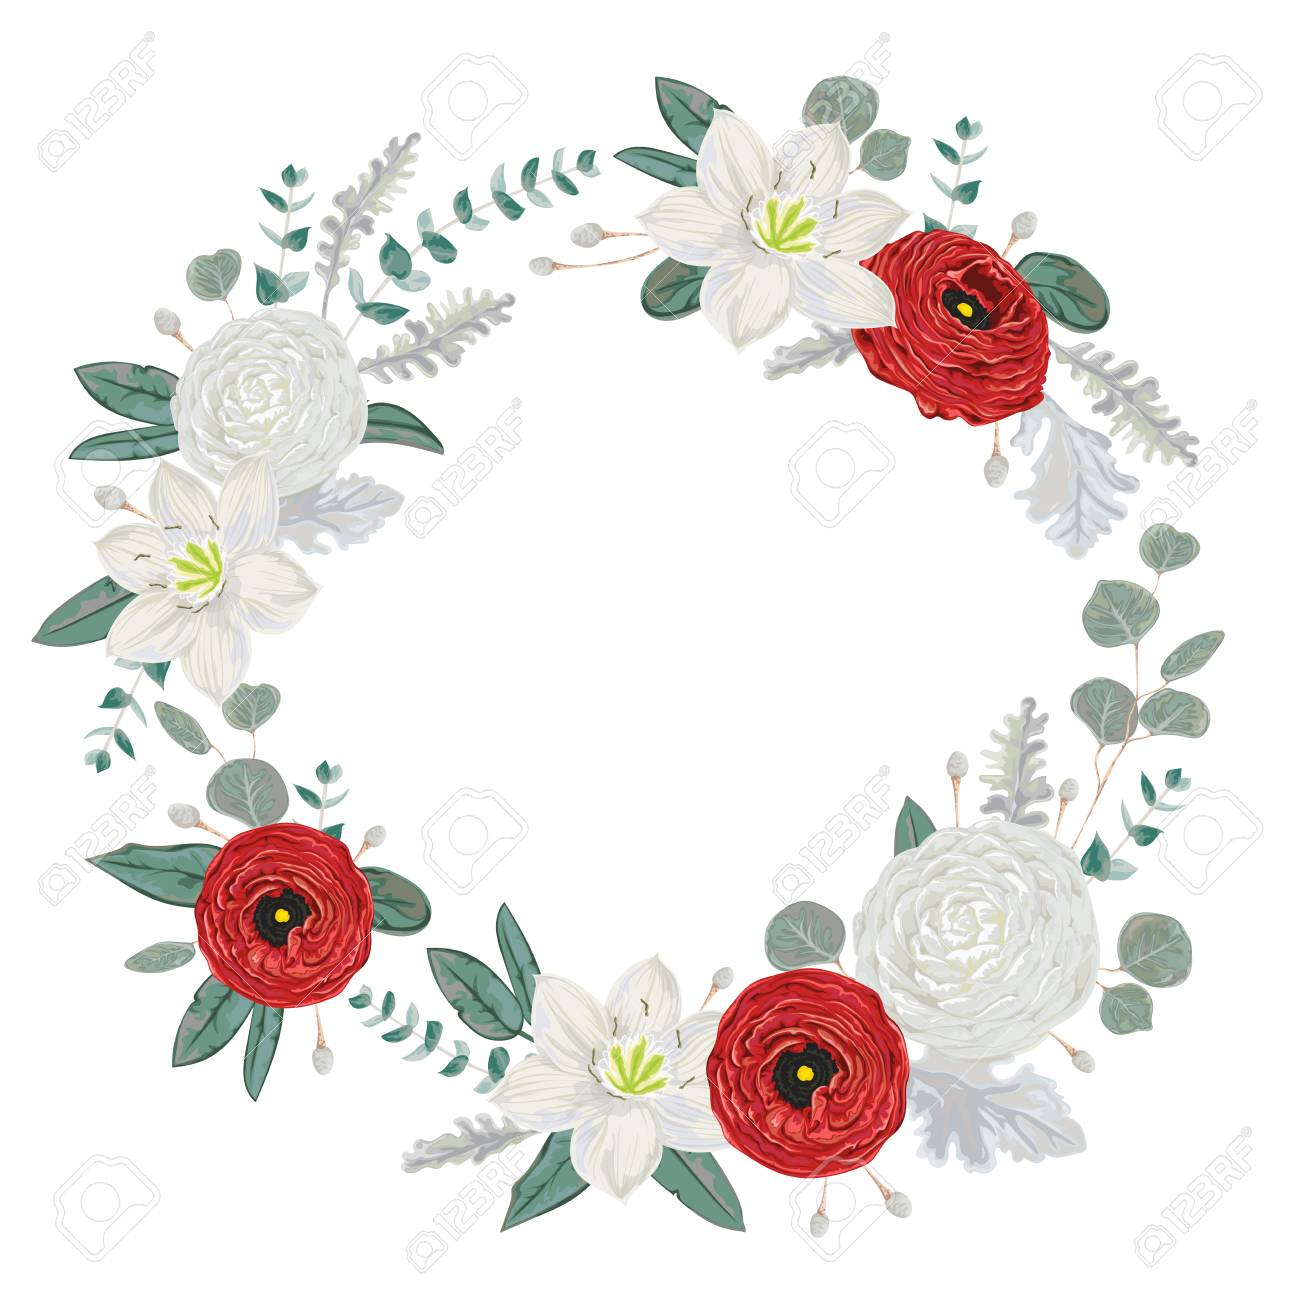 Decorative Holiday Wreath With Flowers Leaves And Branches Royalty Free Cliparts Vectors And Stock Illustration Image 94934163